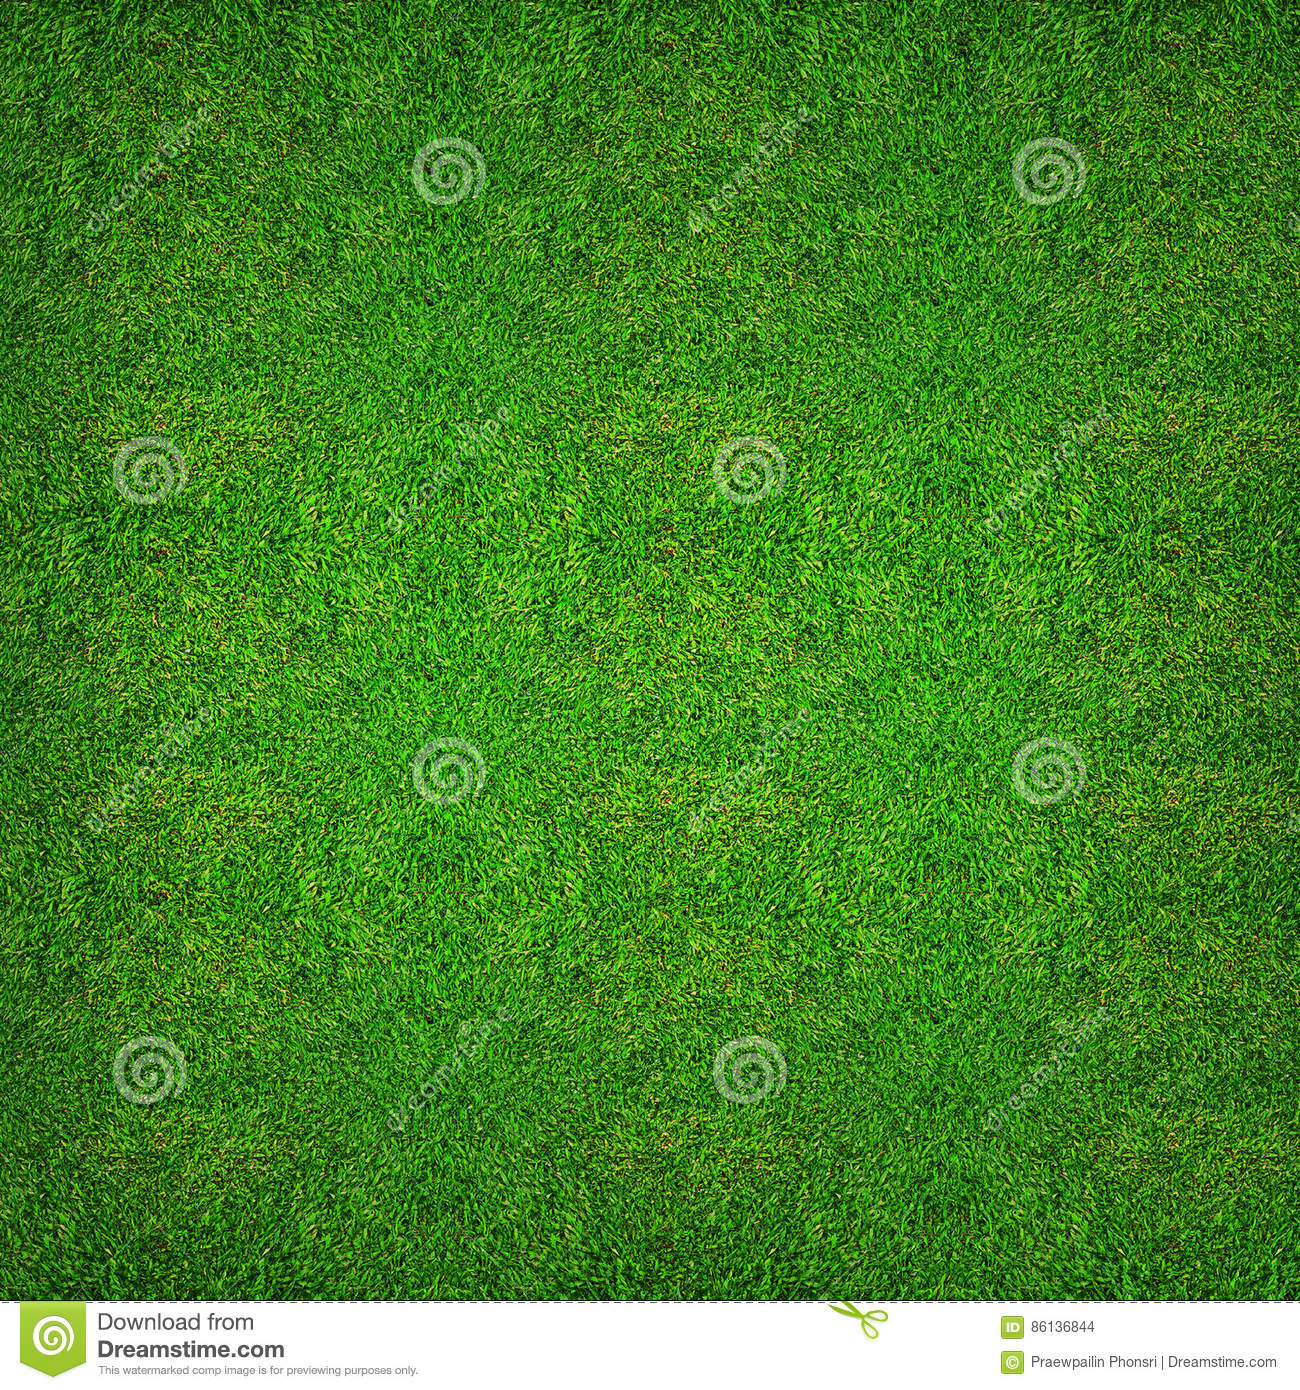 Green grass texture background for soccer sport or football sport and golf sport background.